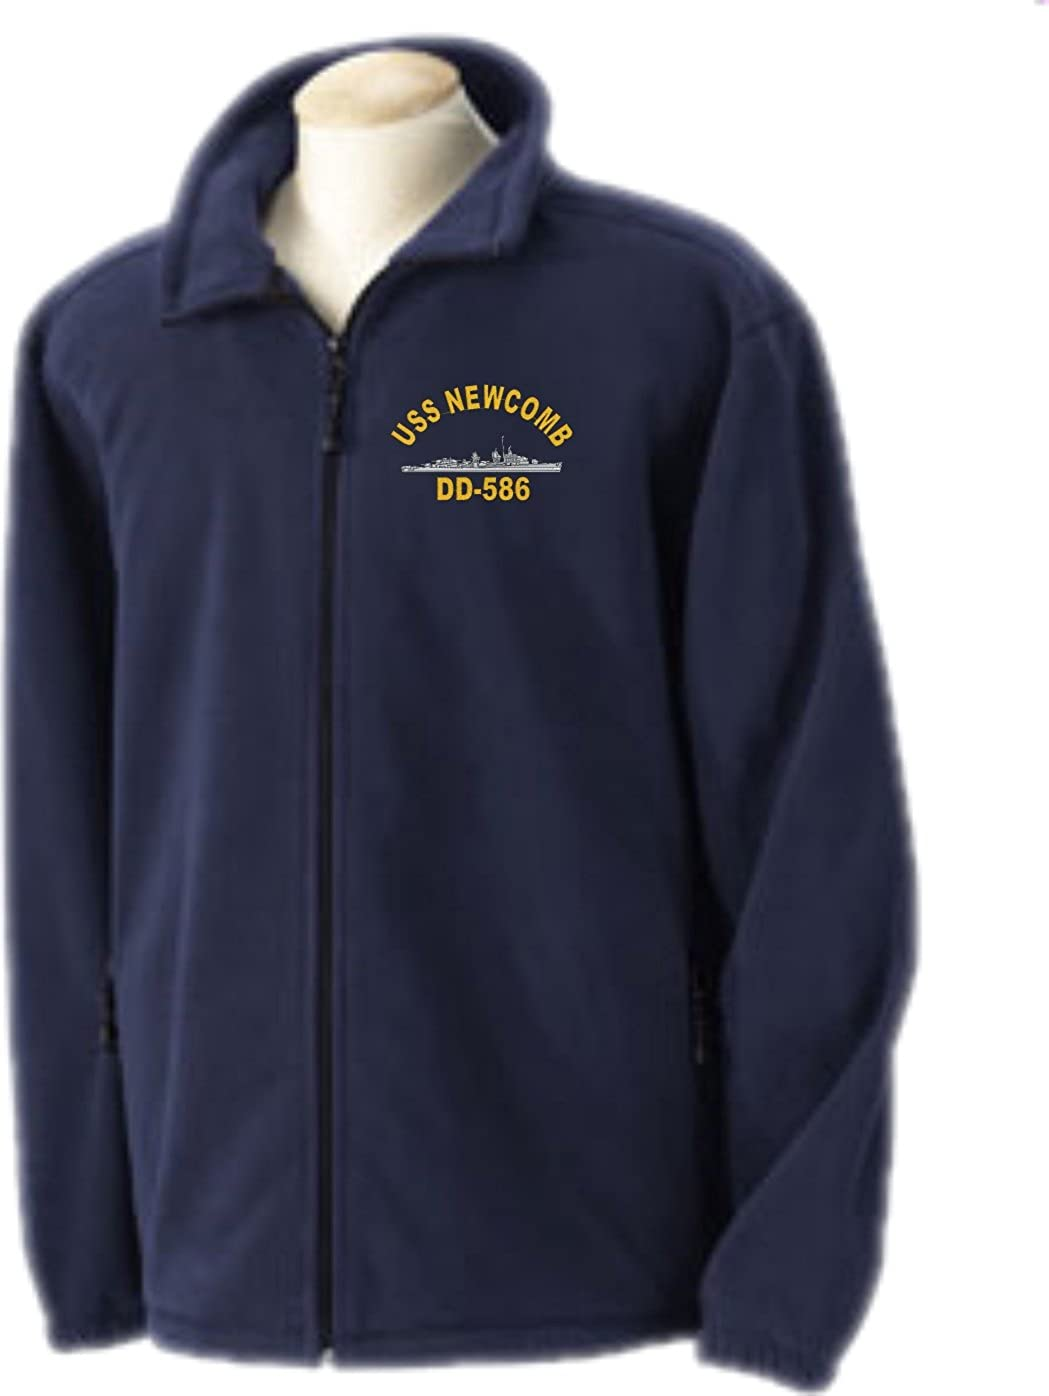 Custom Military Apparel USS Newcomb DD-586 Embroidered Fleece Jacket Sizes SMALL-4X